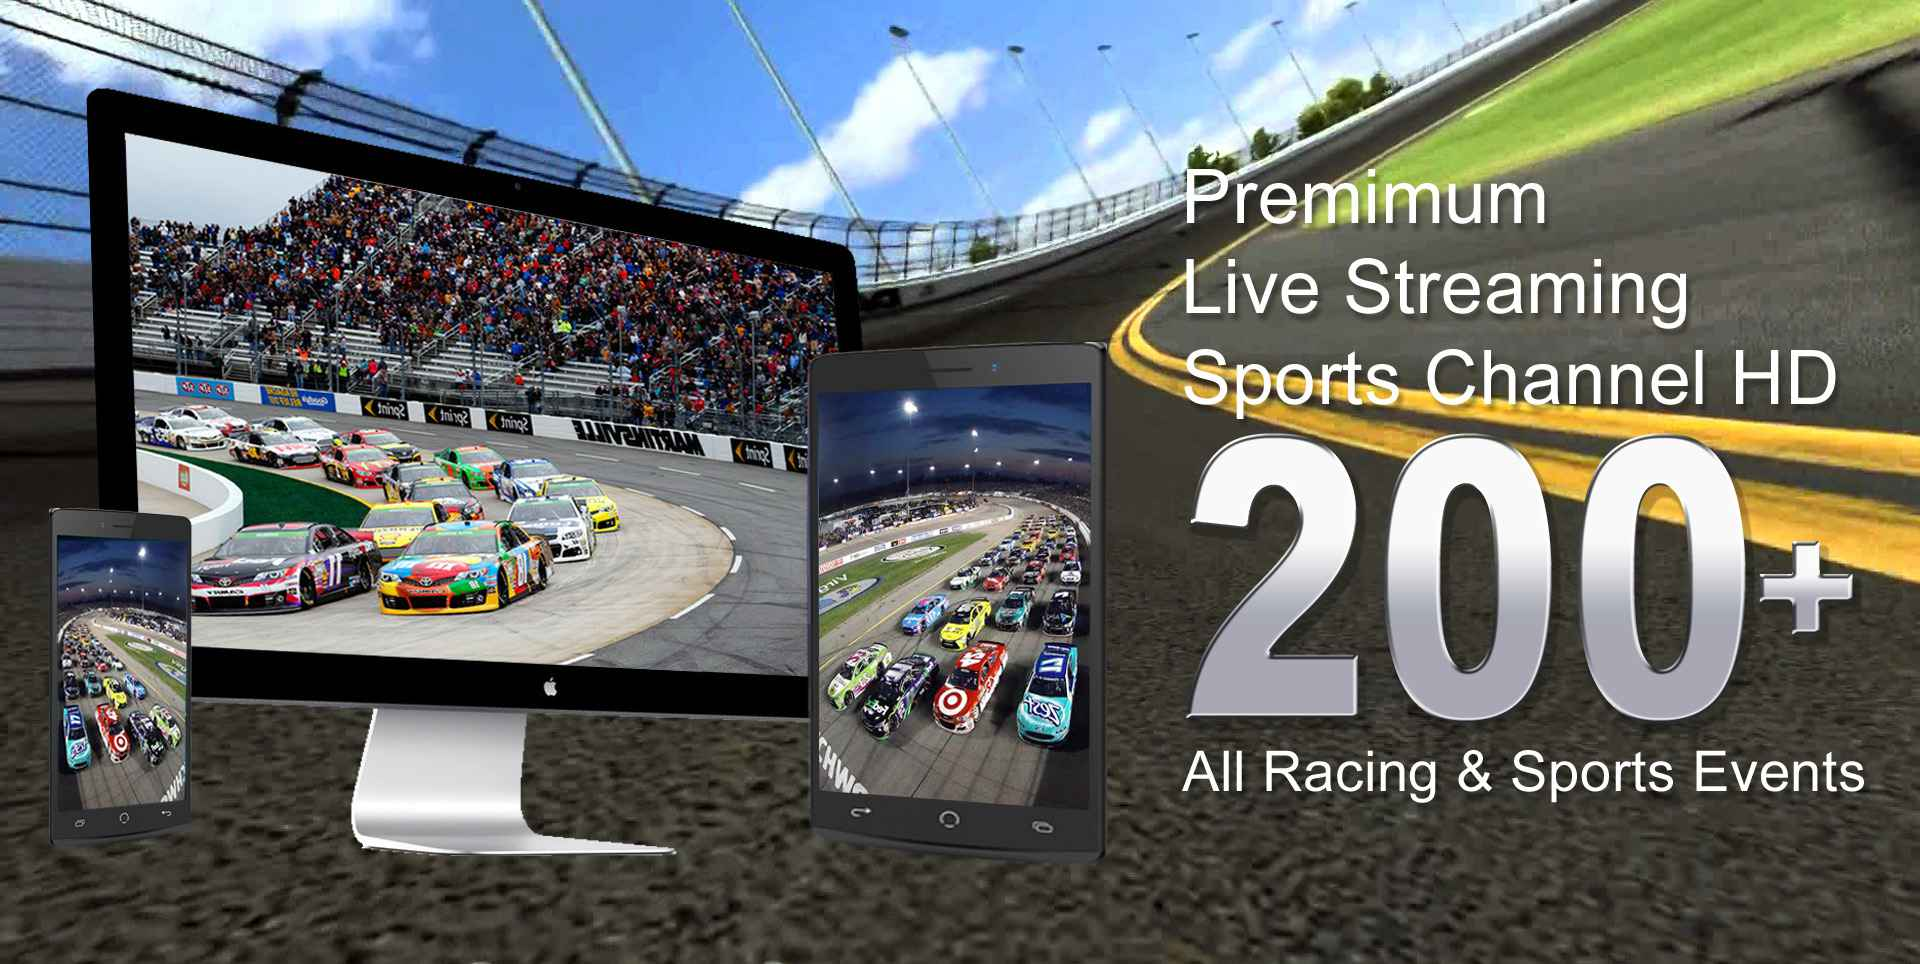 nascar-race-virginia-529-college-savings-250-online